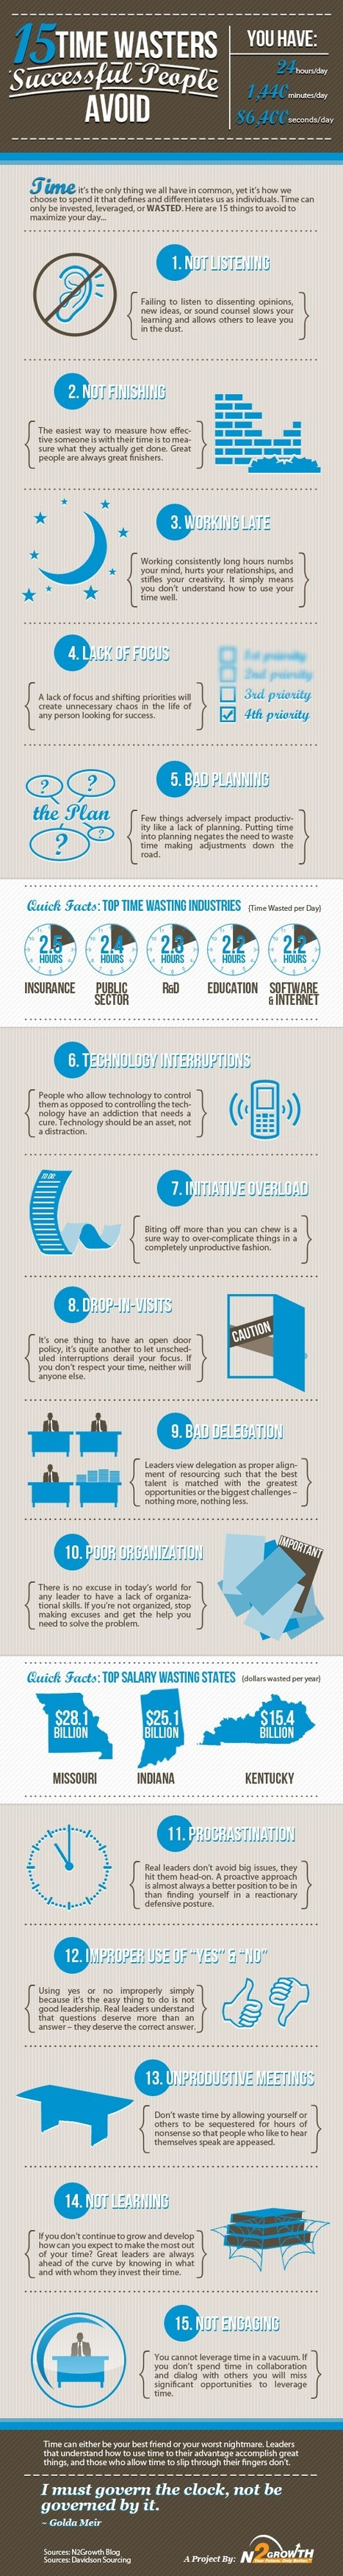 15+ Time Waster you should Avoid to Become Successful | All Infographics | All Infographics | Scoop.it